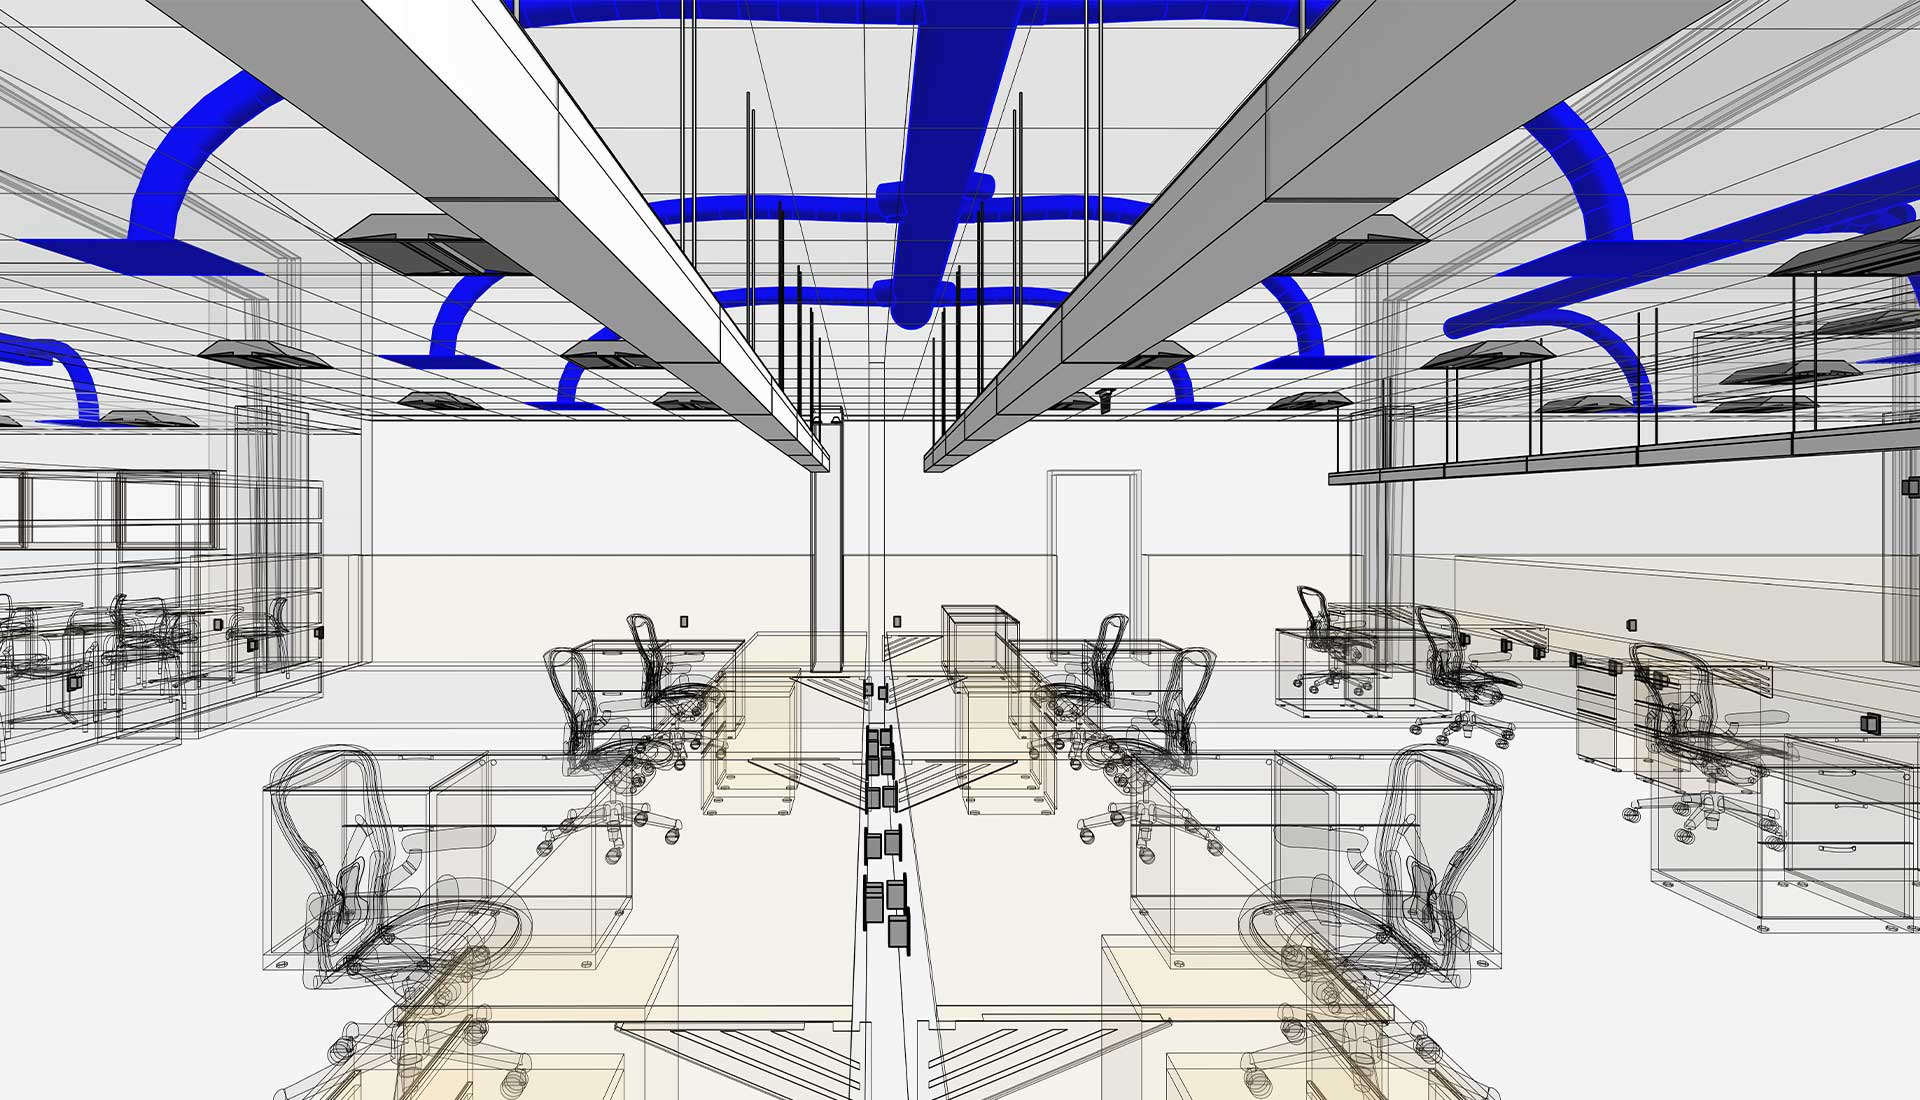 HVAC-Ducting-System-on-Roof-with-Wireframe-Architectural-View_BIM-Modeling-by-United-BIM